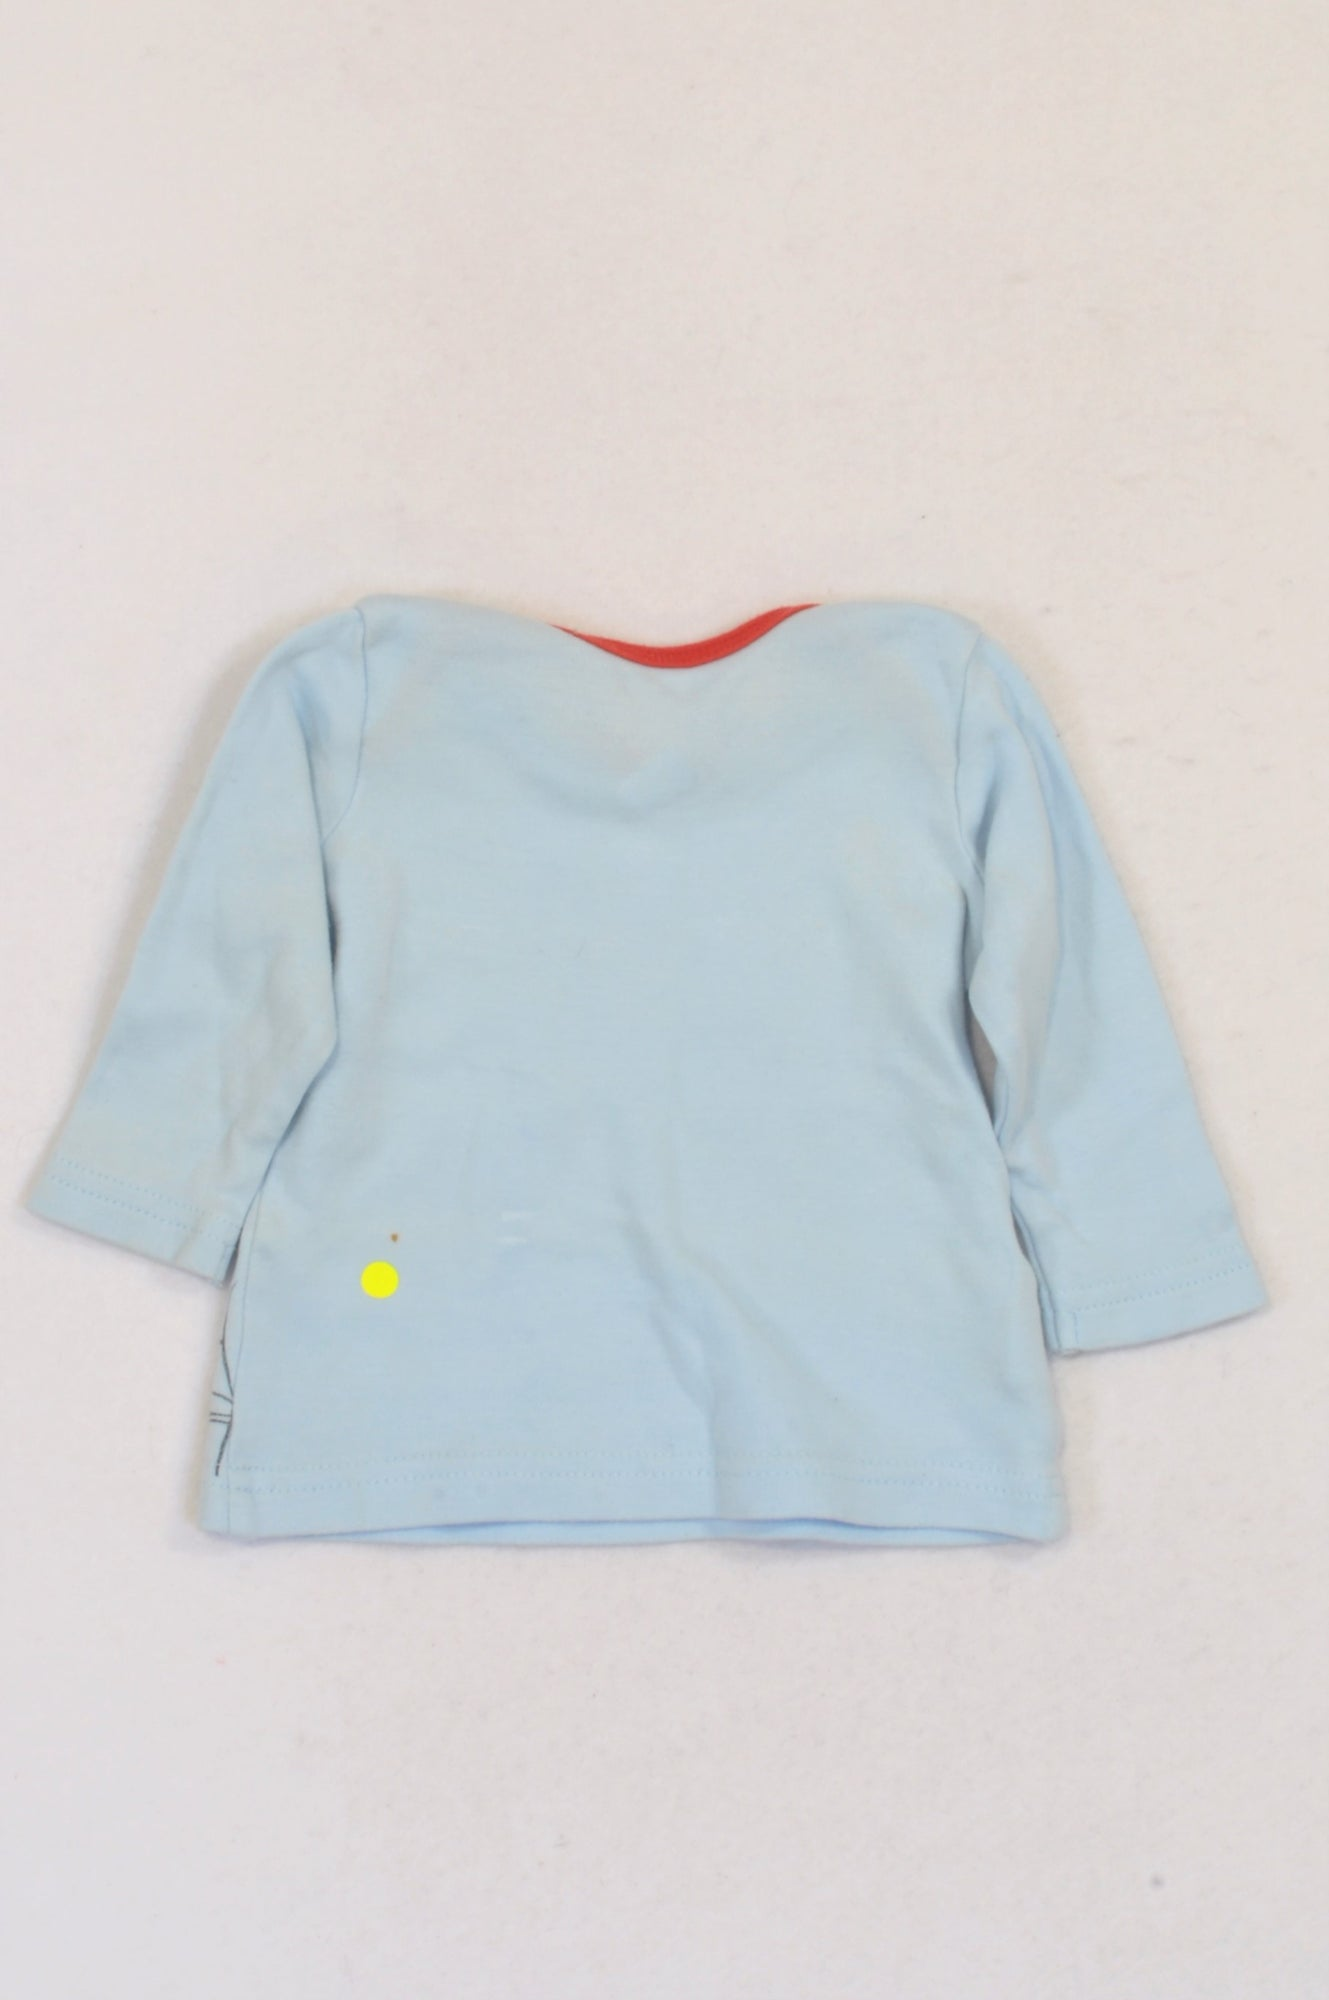 Woolworths Soft Blue Pooh & Tigger T-shirt Boys 0-3 months